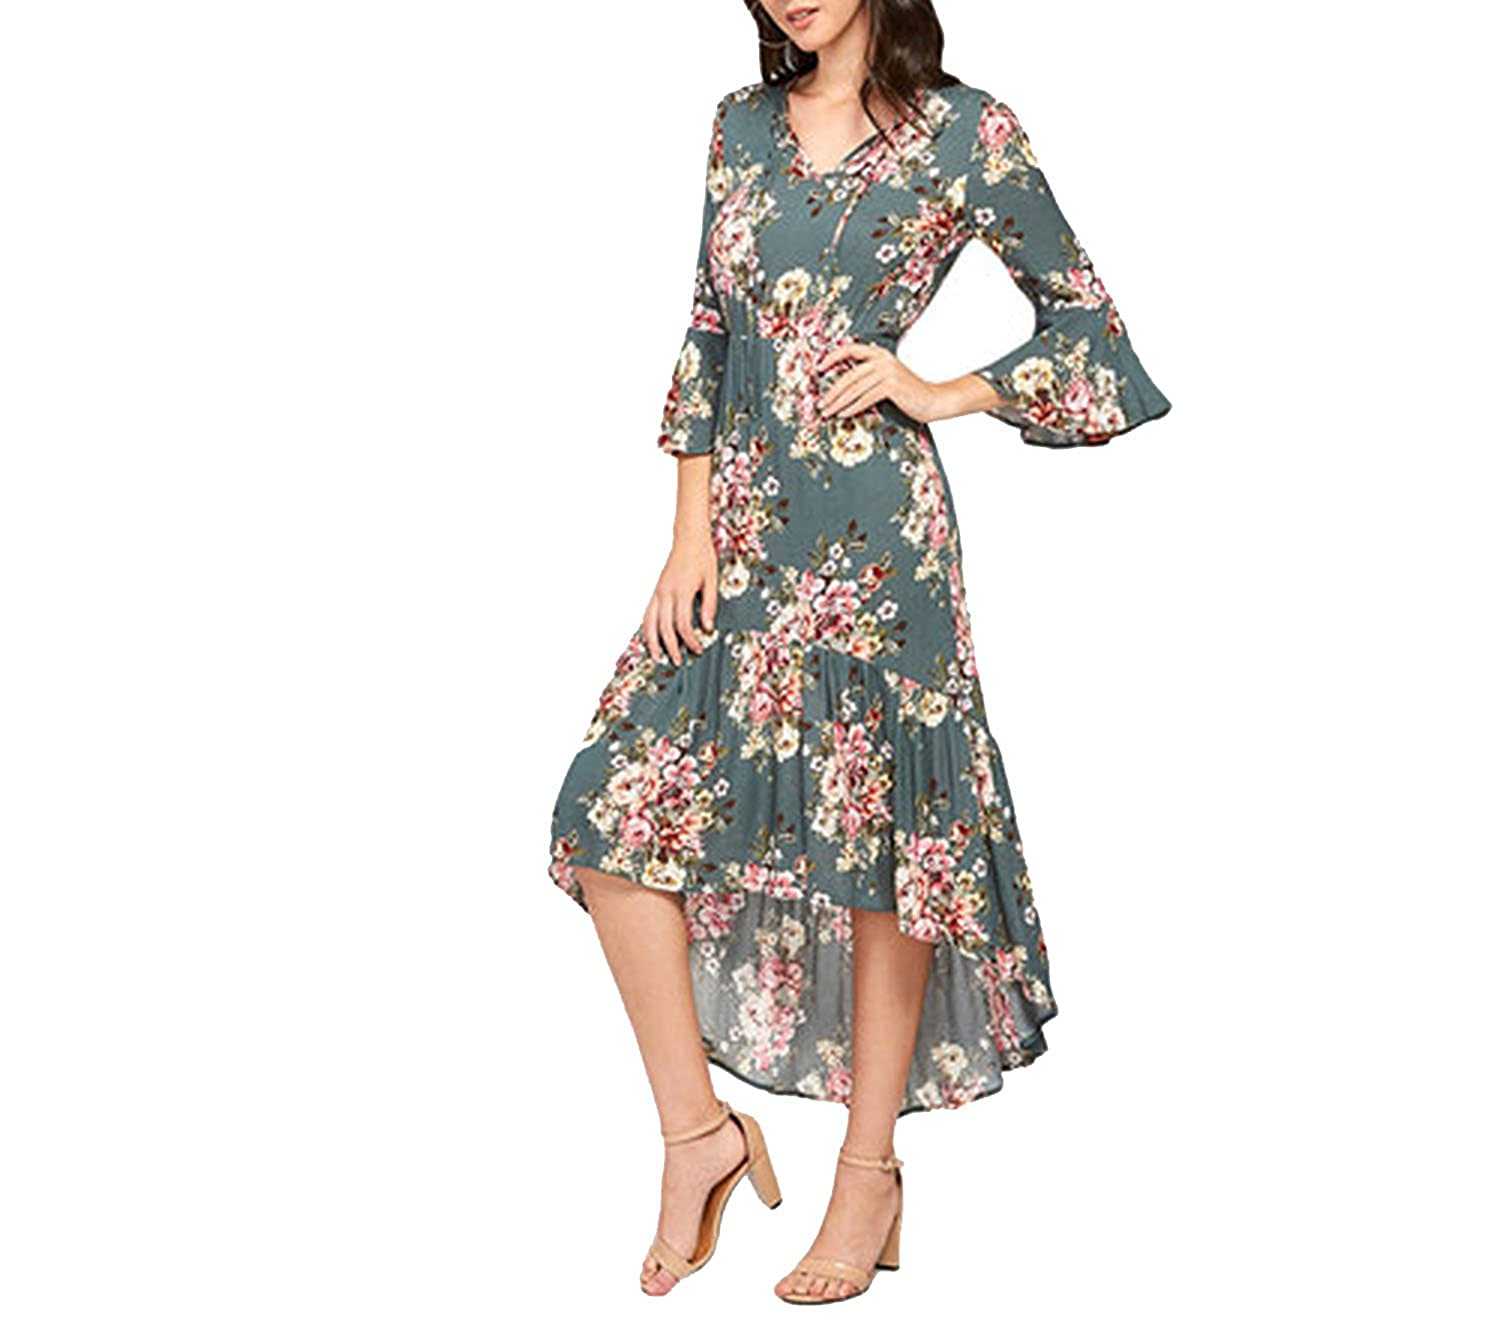 Small-shop dresses Frilled Dip Hem Dress Floral Print V Neck Three Quarter  Length Sleeve High Low Dress at Amazon Women s Clothing store  793df4fc4